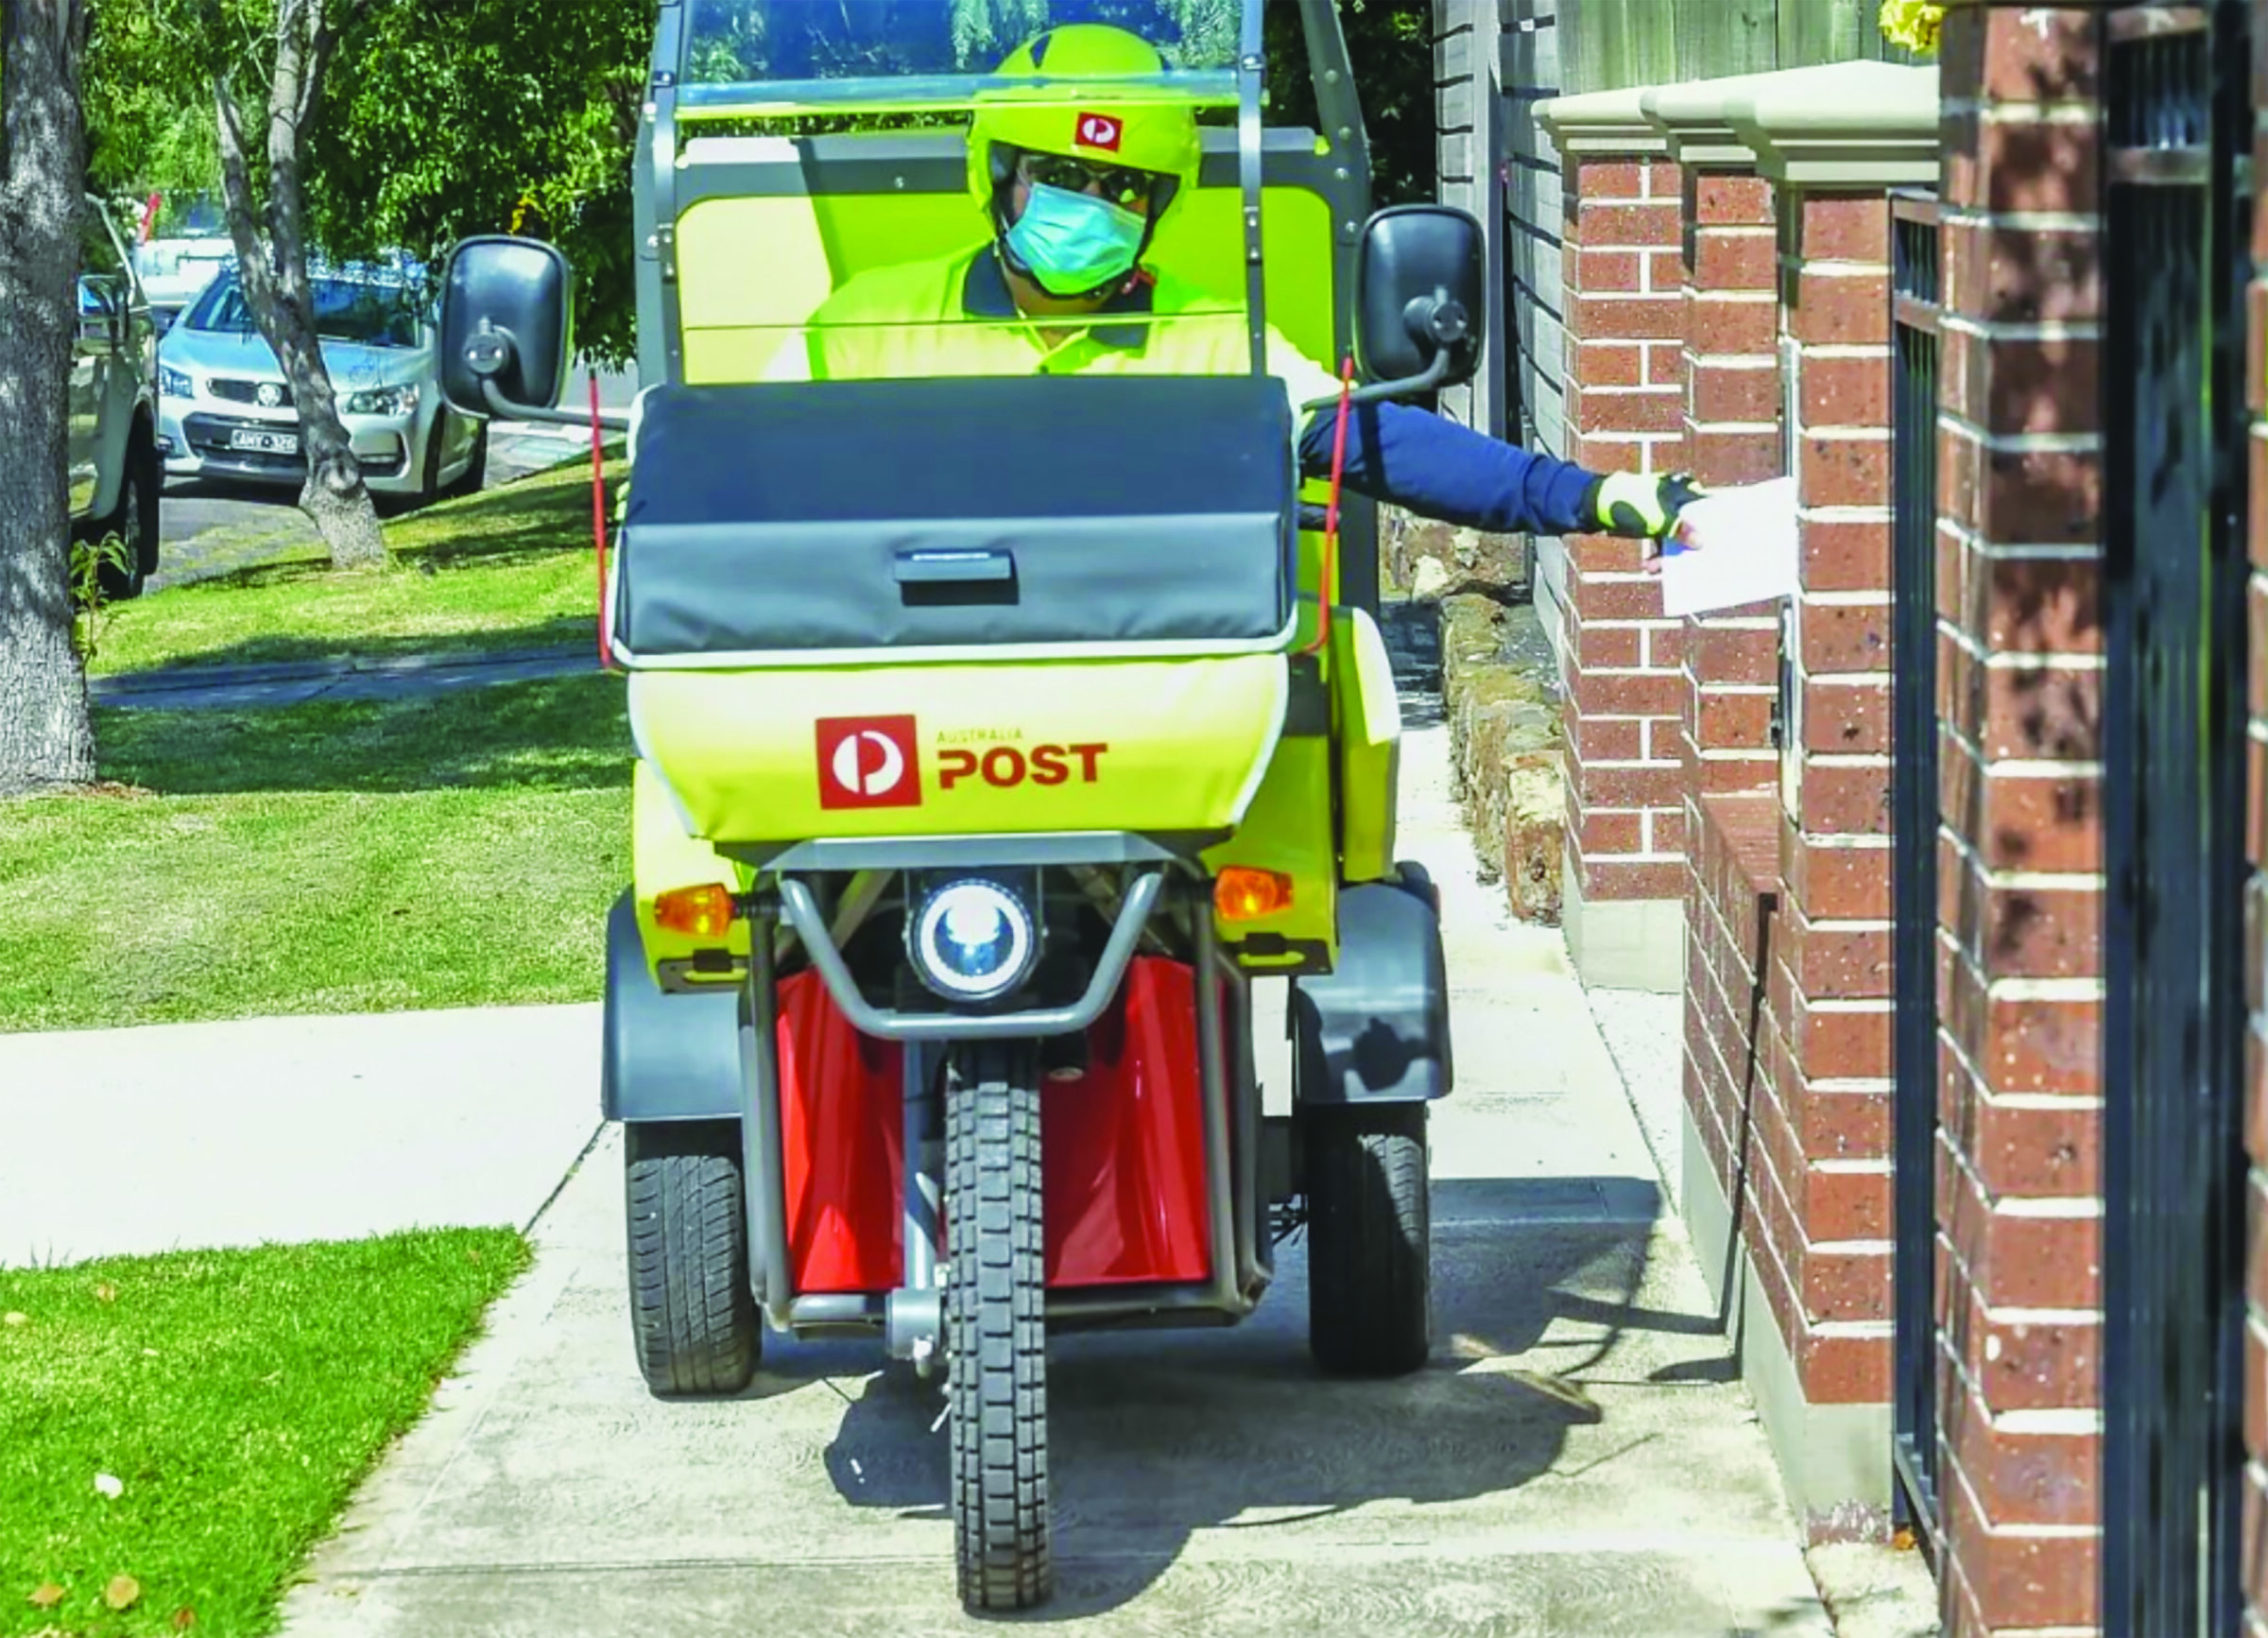 Postie deliveries halved - The Local